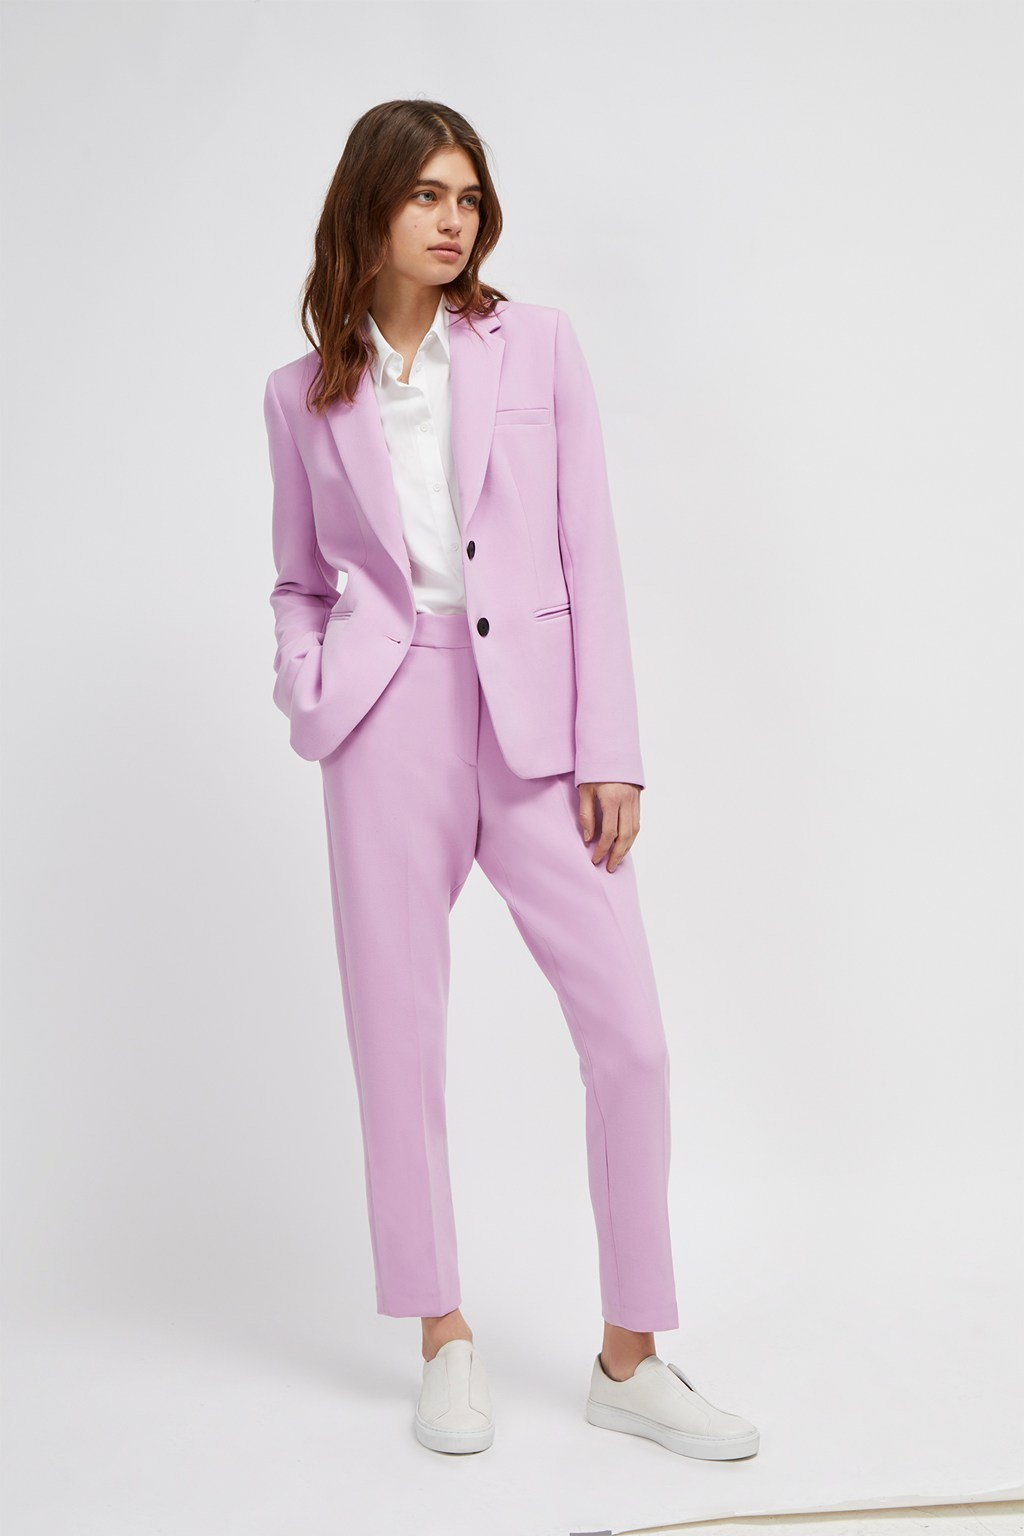 75lap-womens-fu-kyotoblossom-sundae-suiting-pastel-suit-jacket.jpg